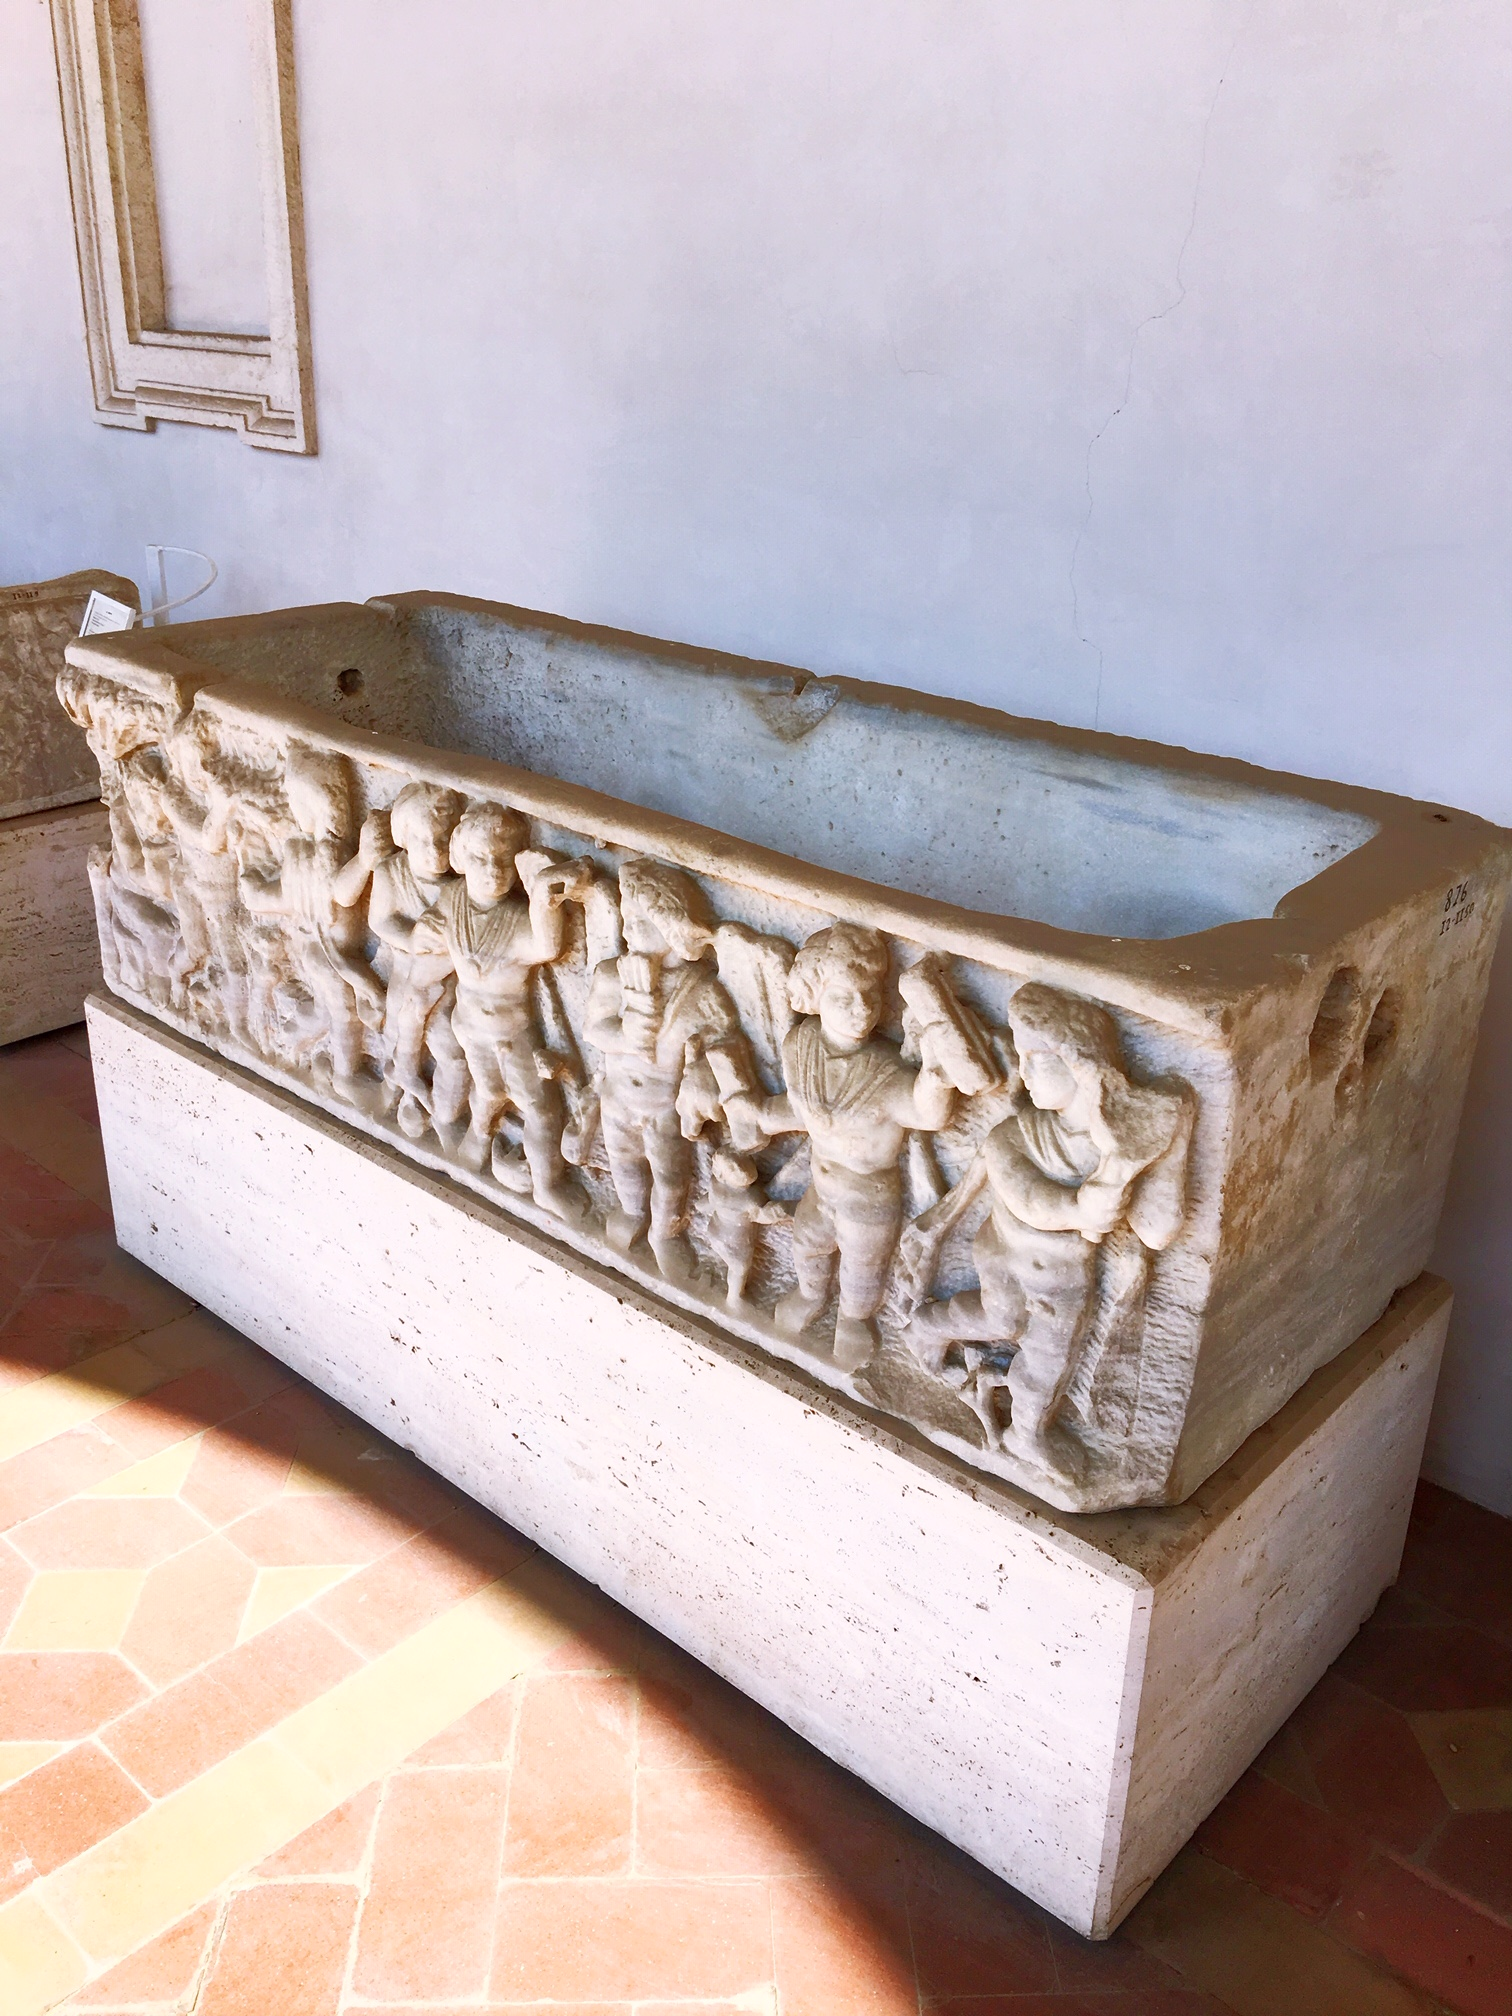 the details on this 4th century sarcophagus are amazing. 1700 years later the eyes and noses and facial expressions are all still there. You can see it at the Baths of Diocletian in Rome